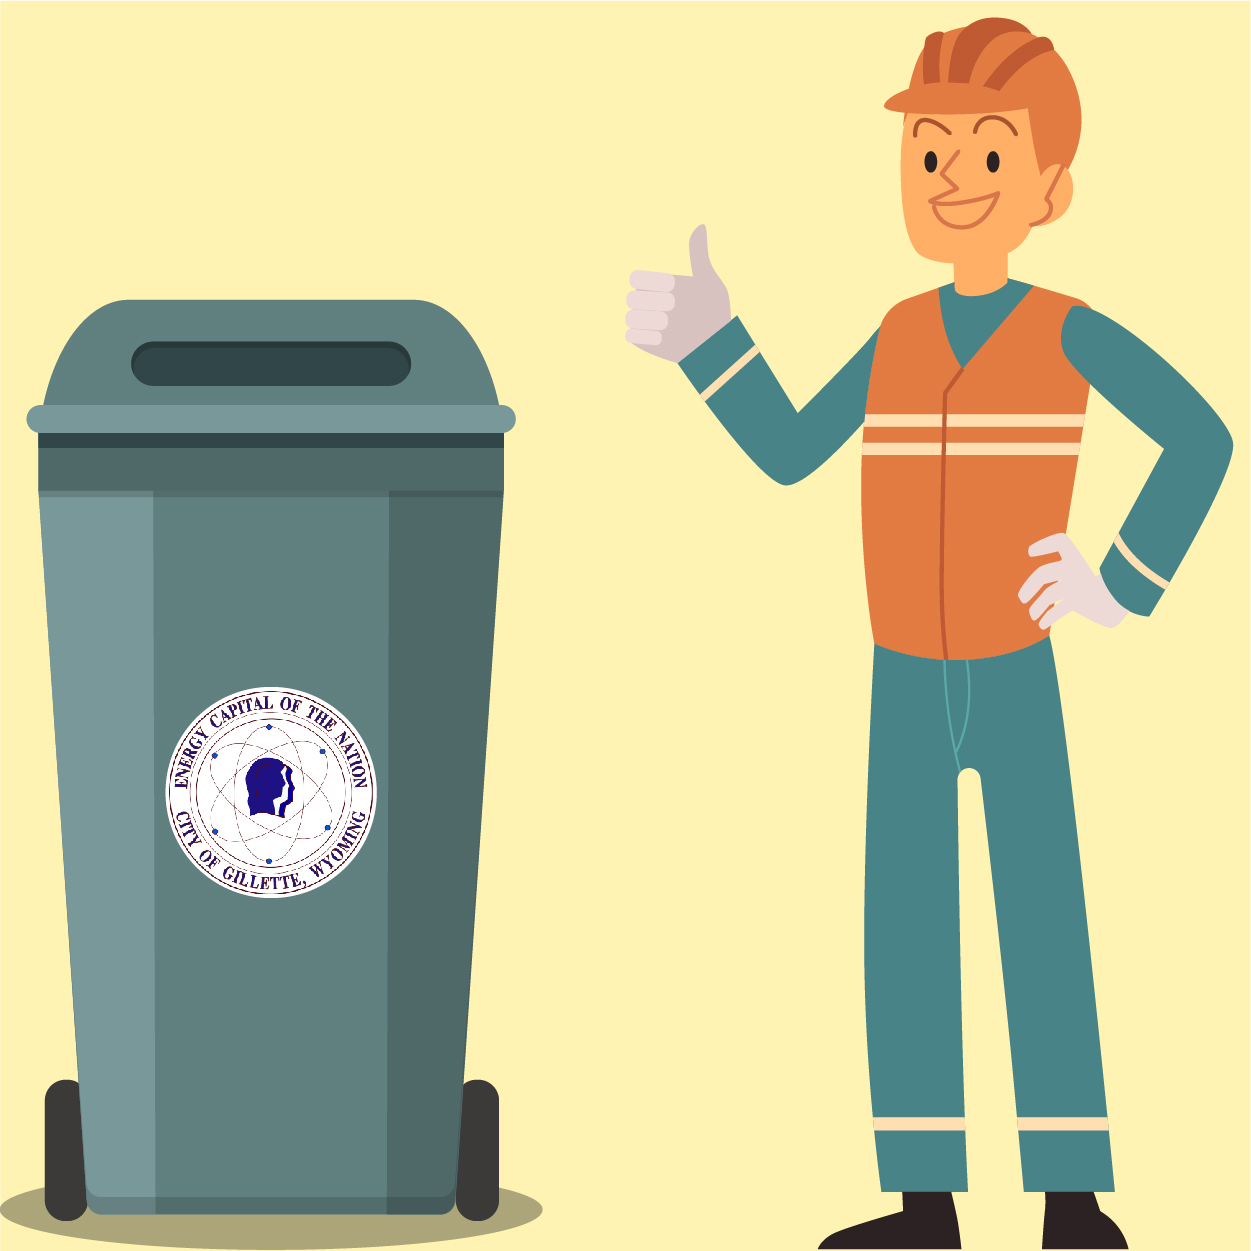 Reminder for Residential Solid Waste Service